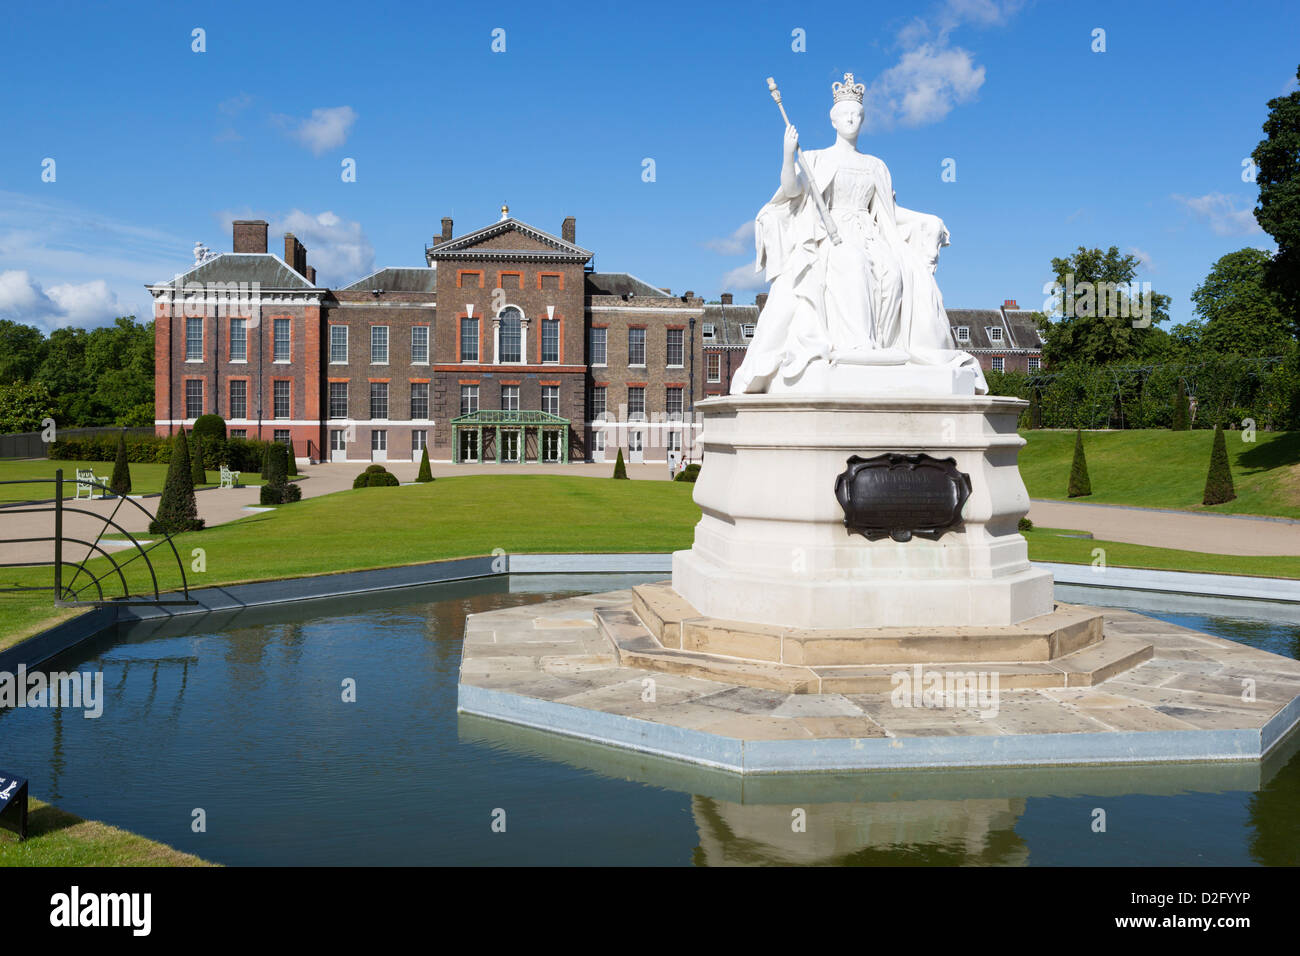 Kensington Palace Home Of Prince William And Kate